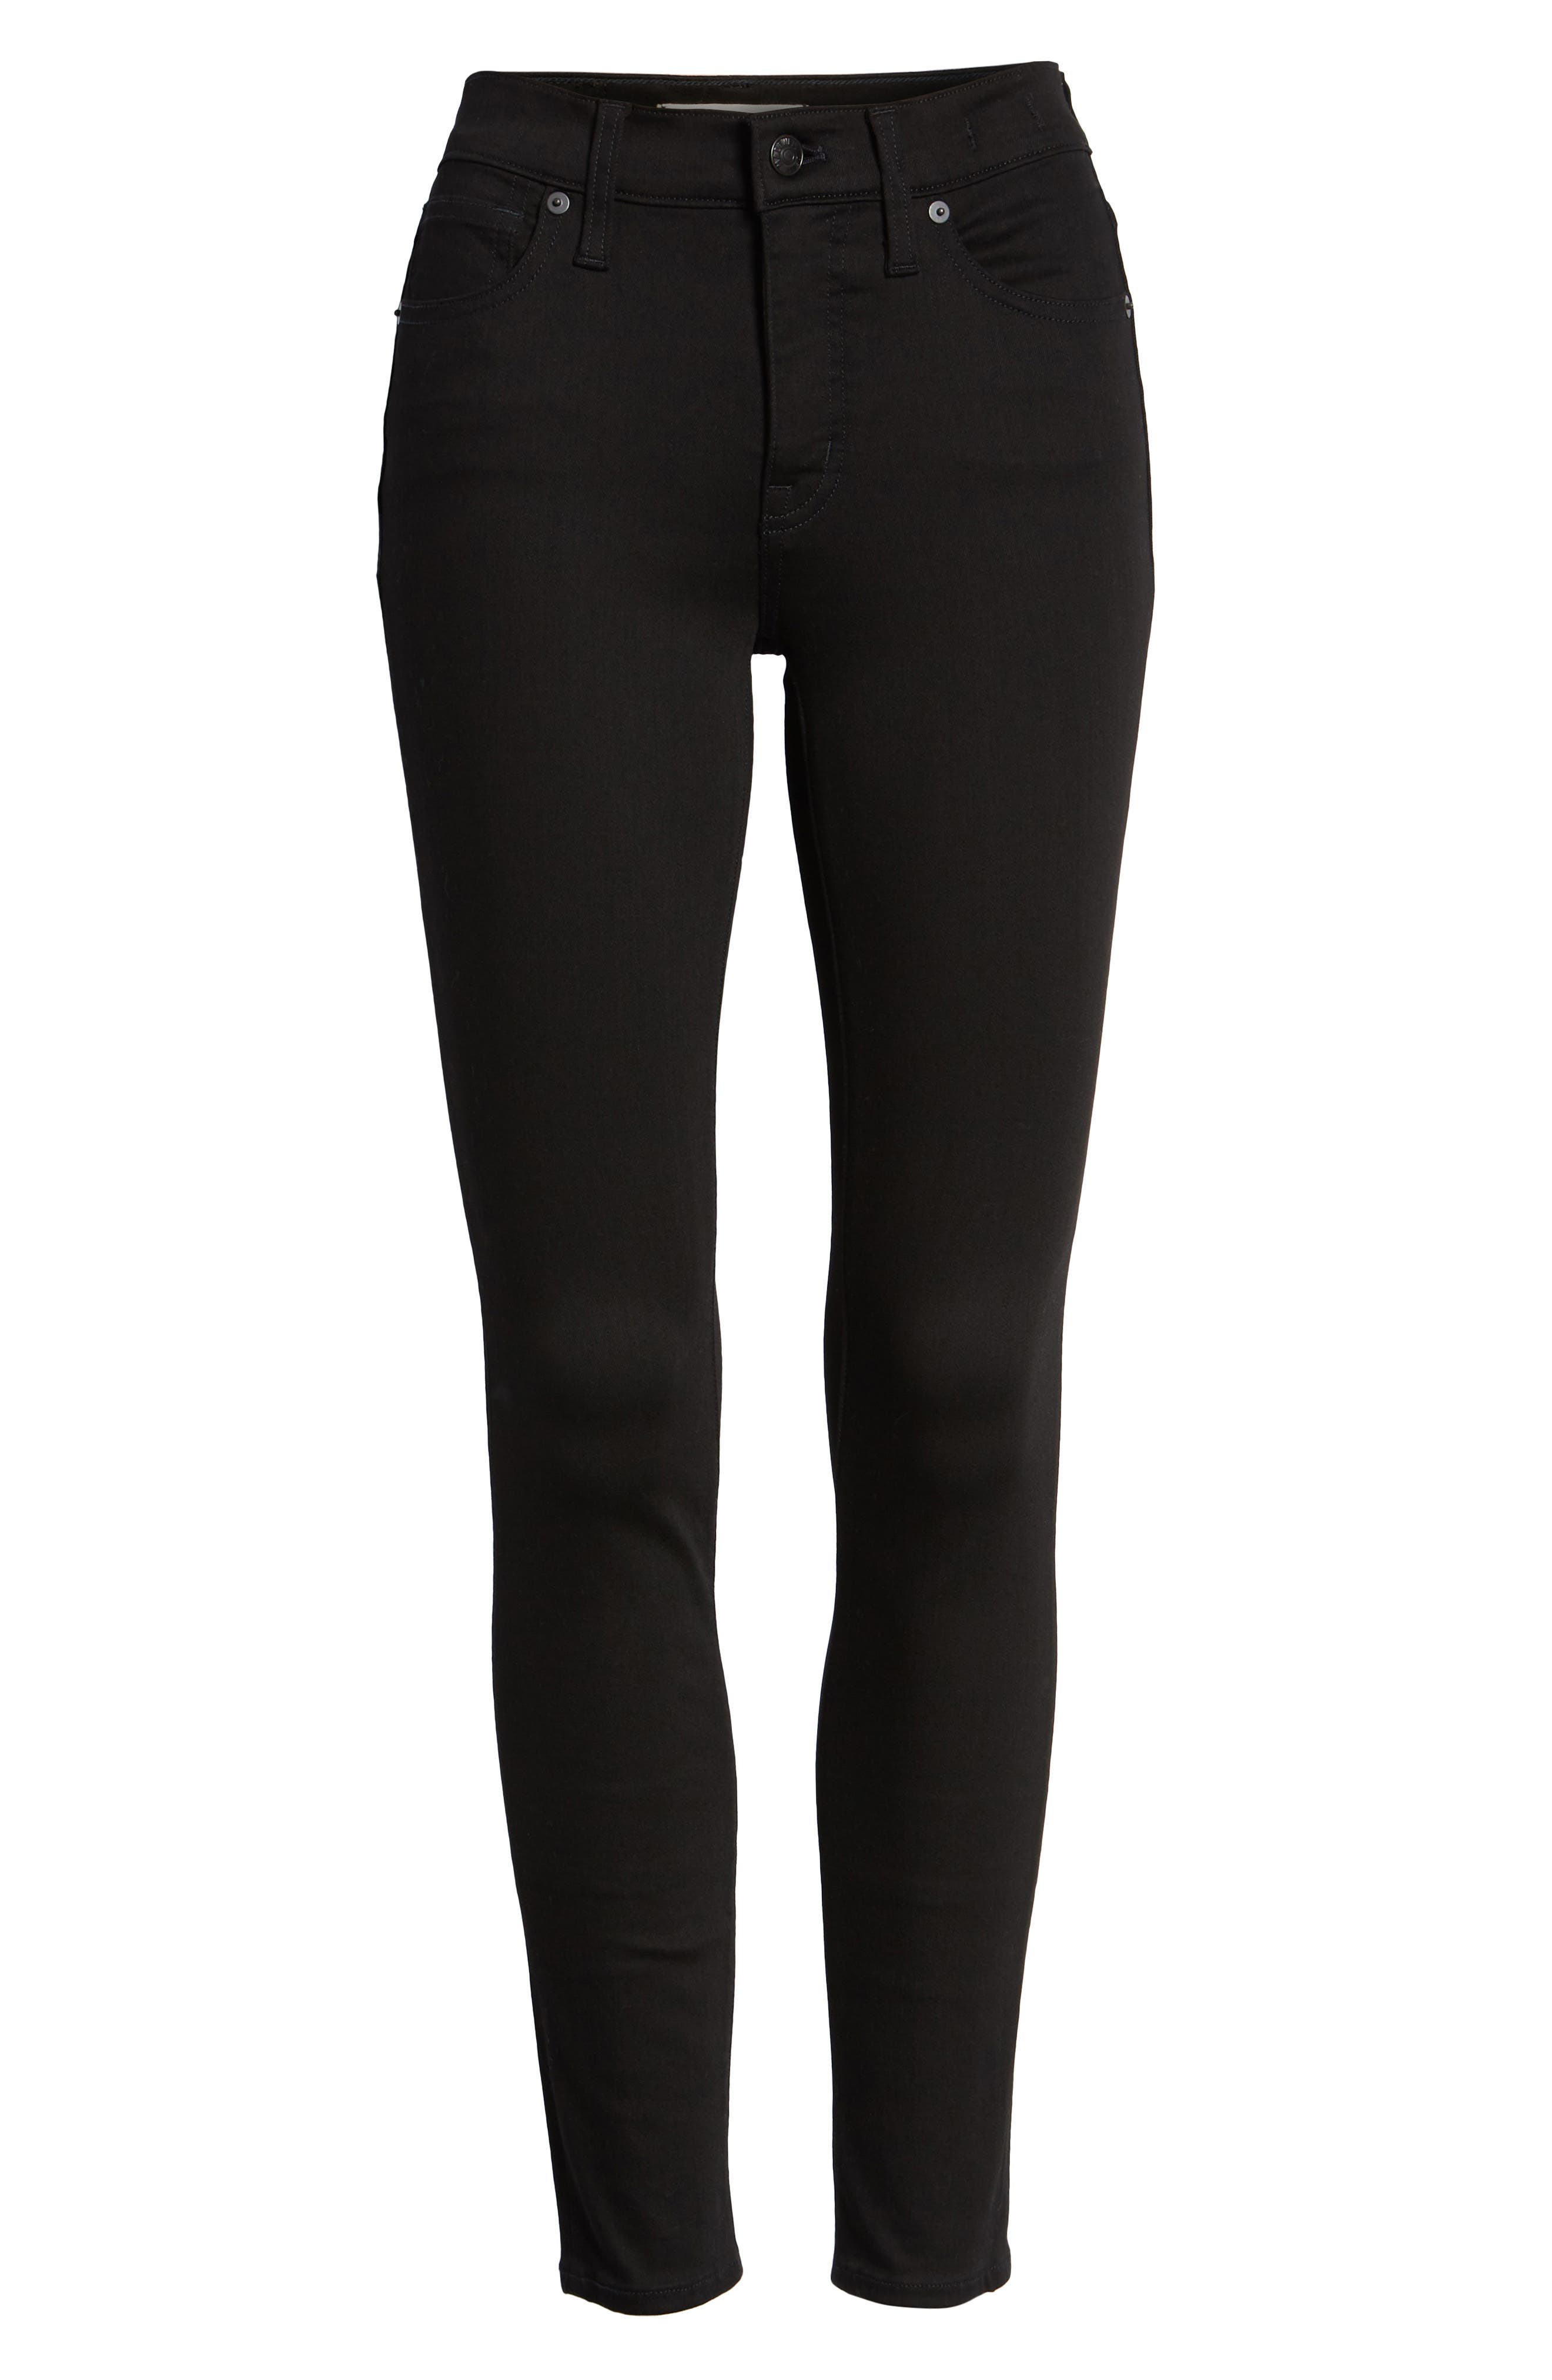 9-Inch High Waist Skinny Jeans,                             Alternate thumbnail 6, color,                             BLACK FROST